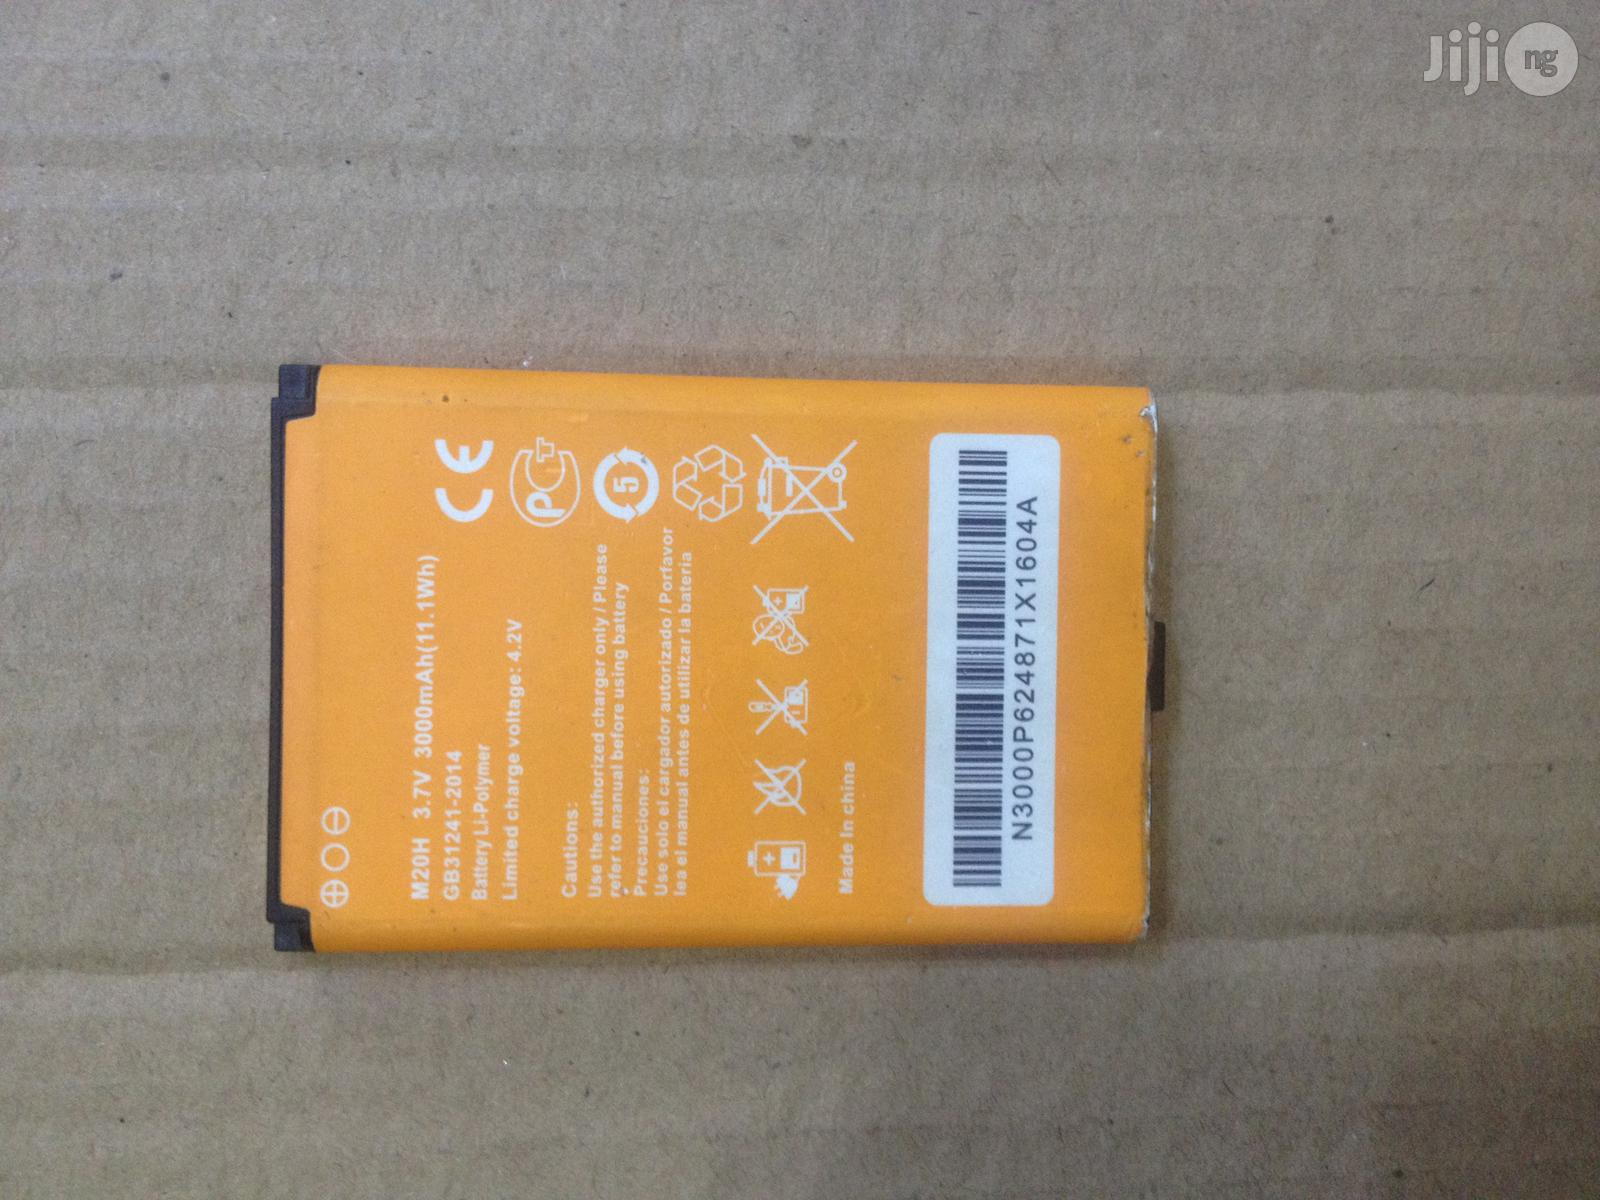 Busy 3G Universal Pocket Mobile Wifi Router Hotspot | Networking Products for sale in Ikeja, Lagos State, Nigeria